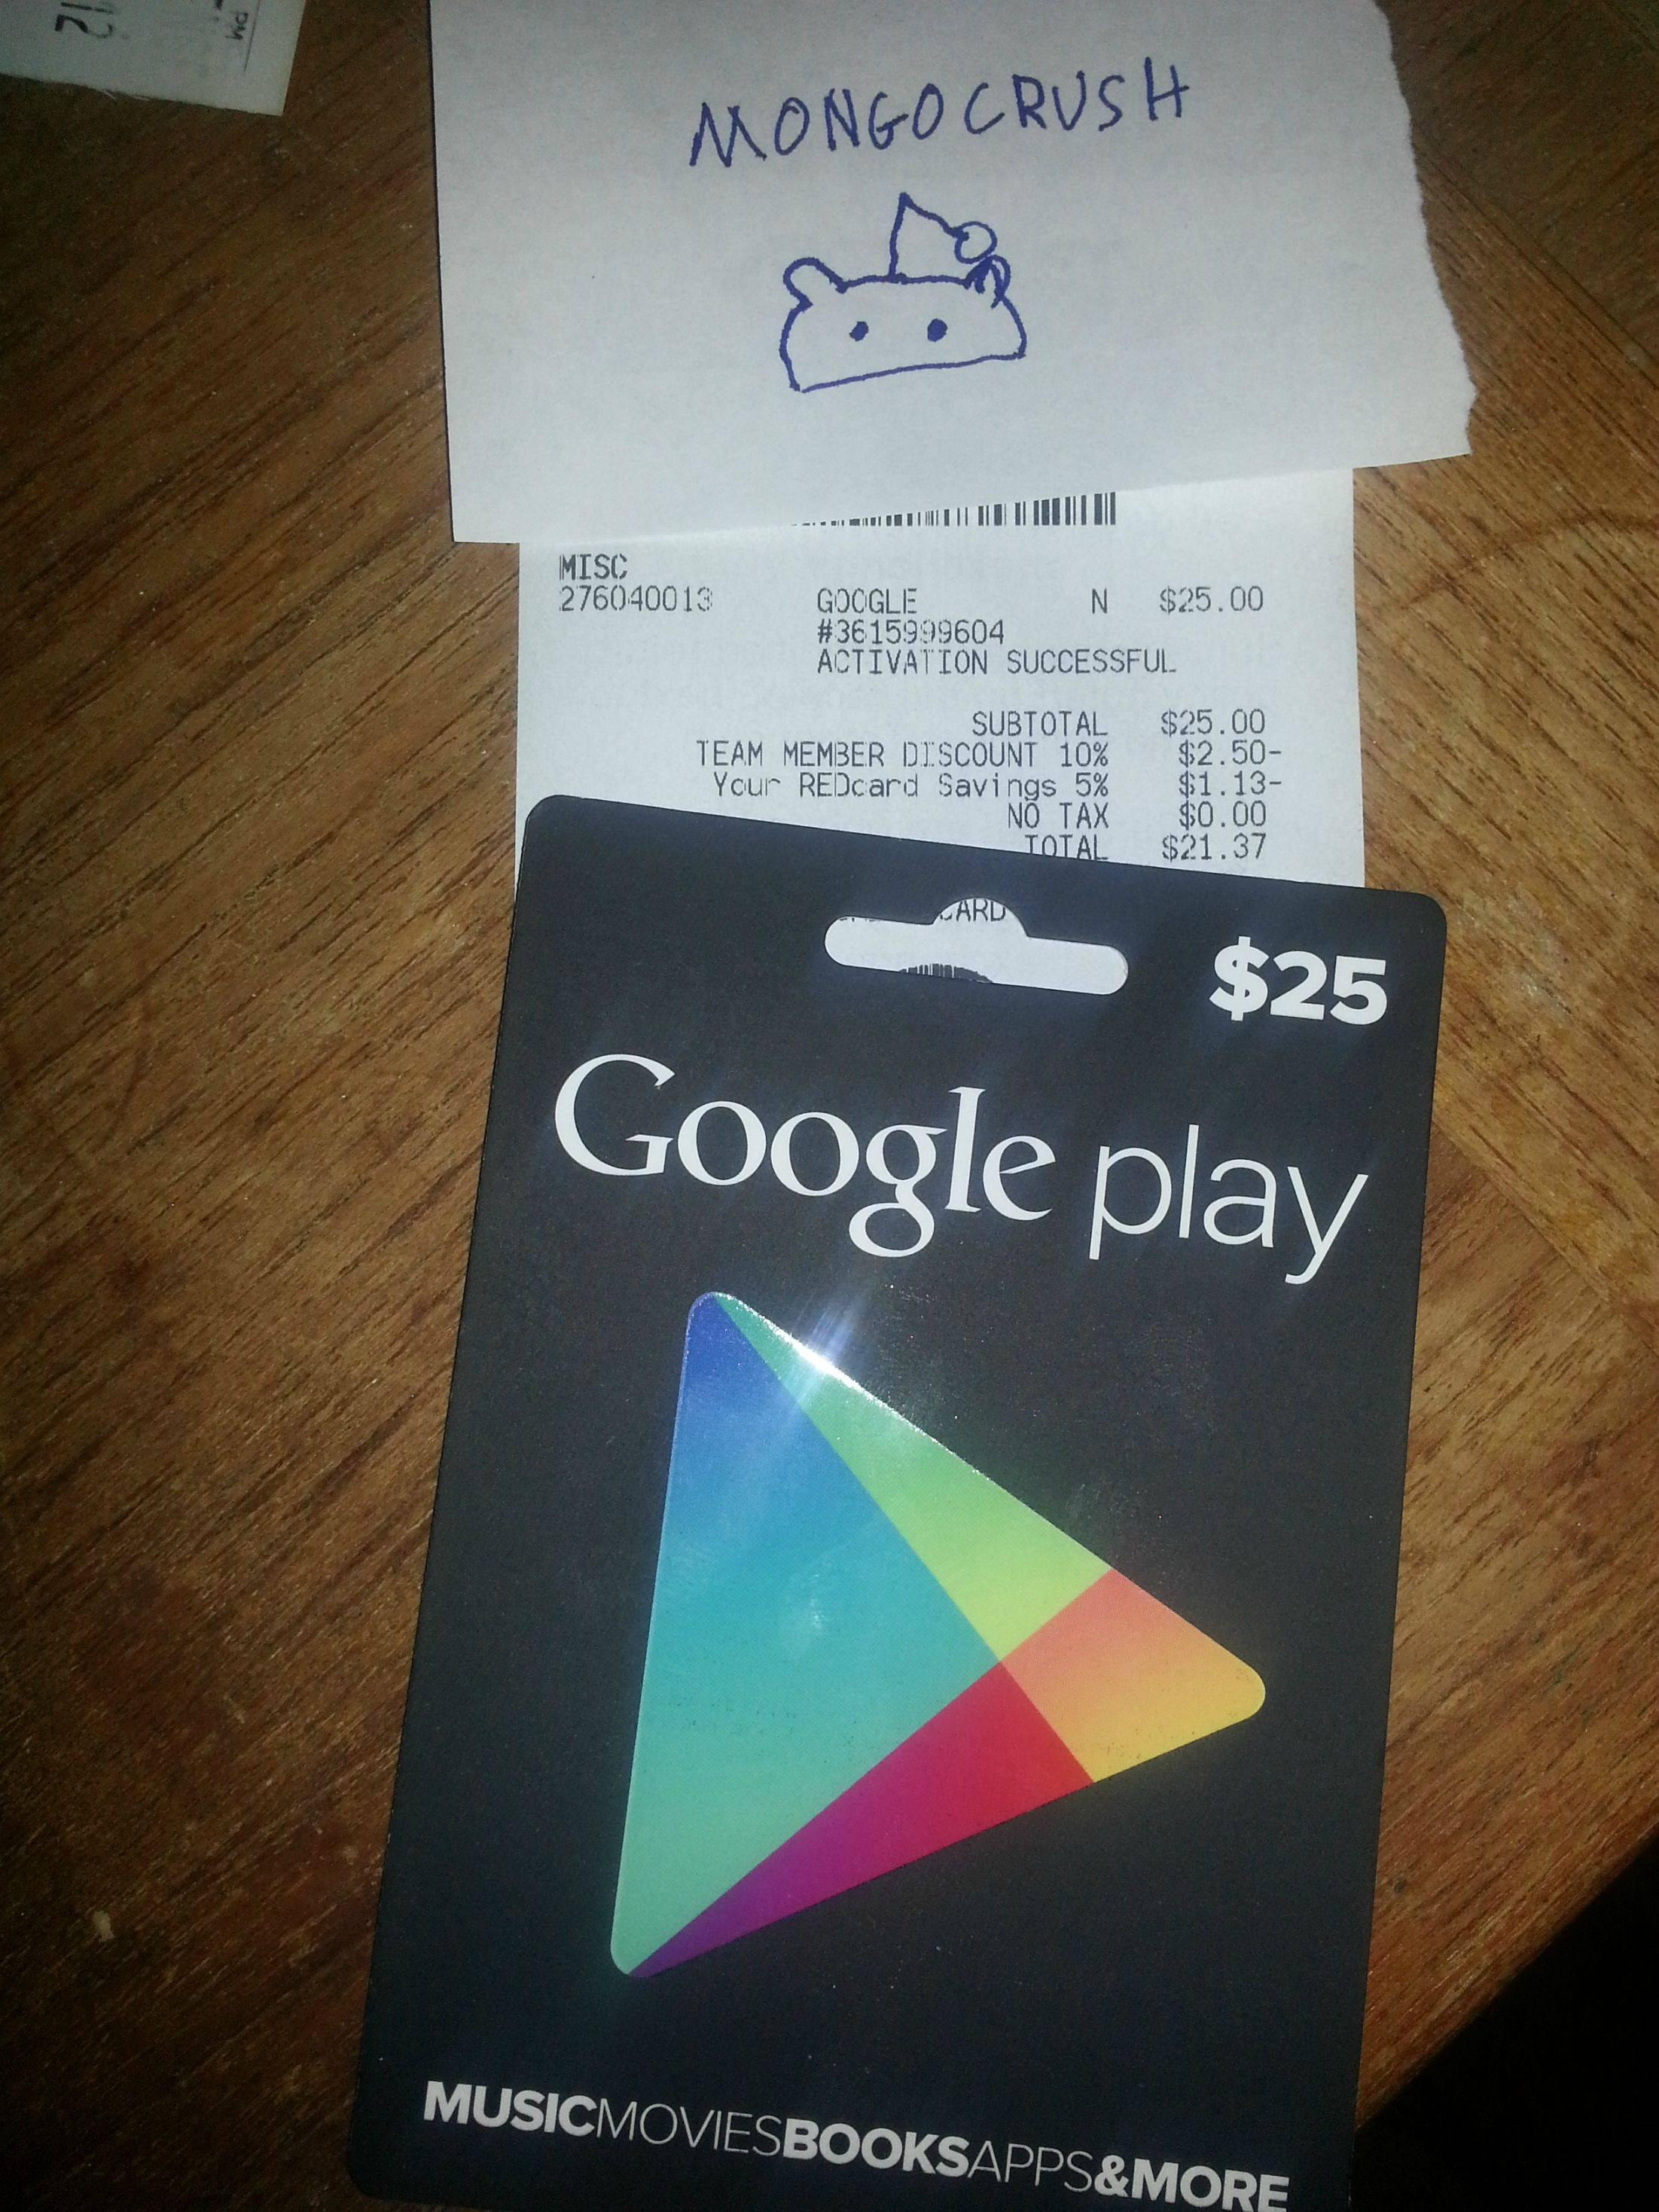 google play store gift card allegedly purchased at store. Black Bedroom Furniture Sets. Home Design Ideas